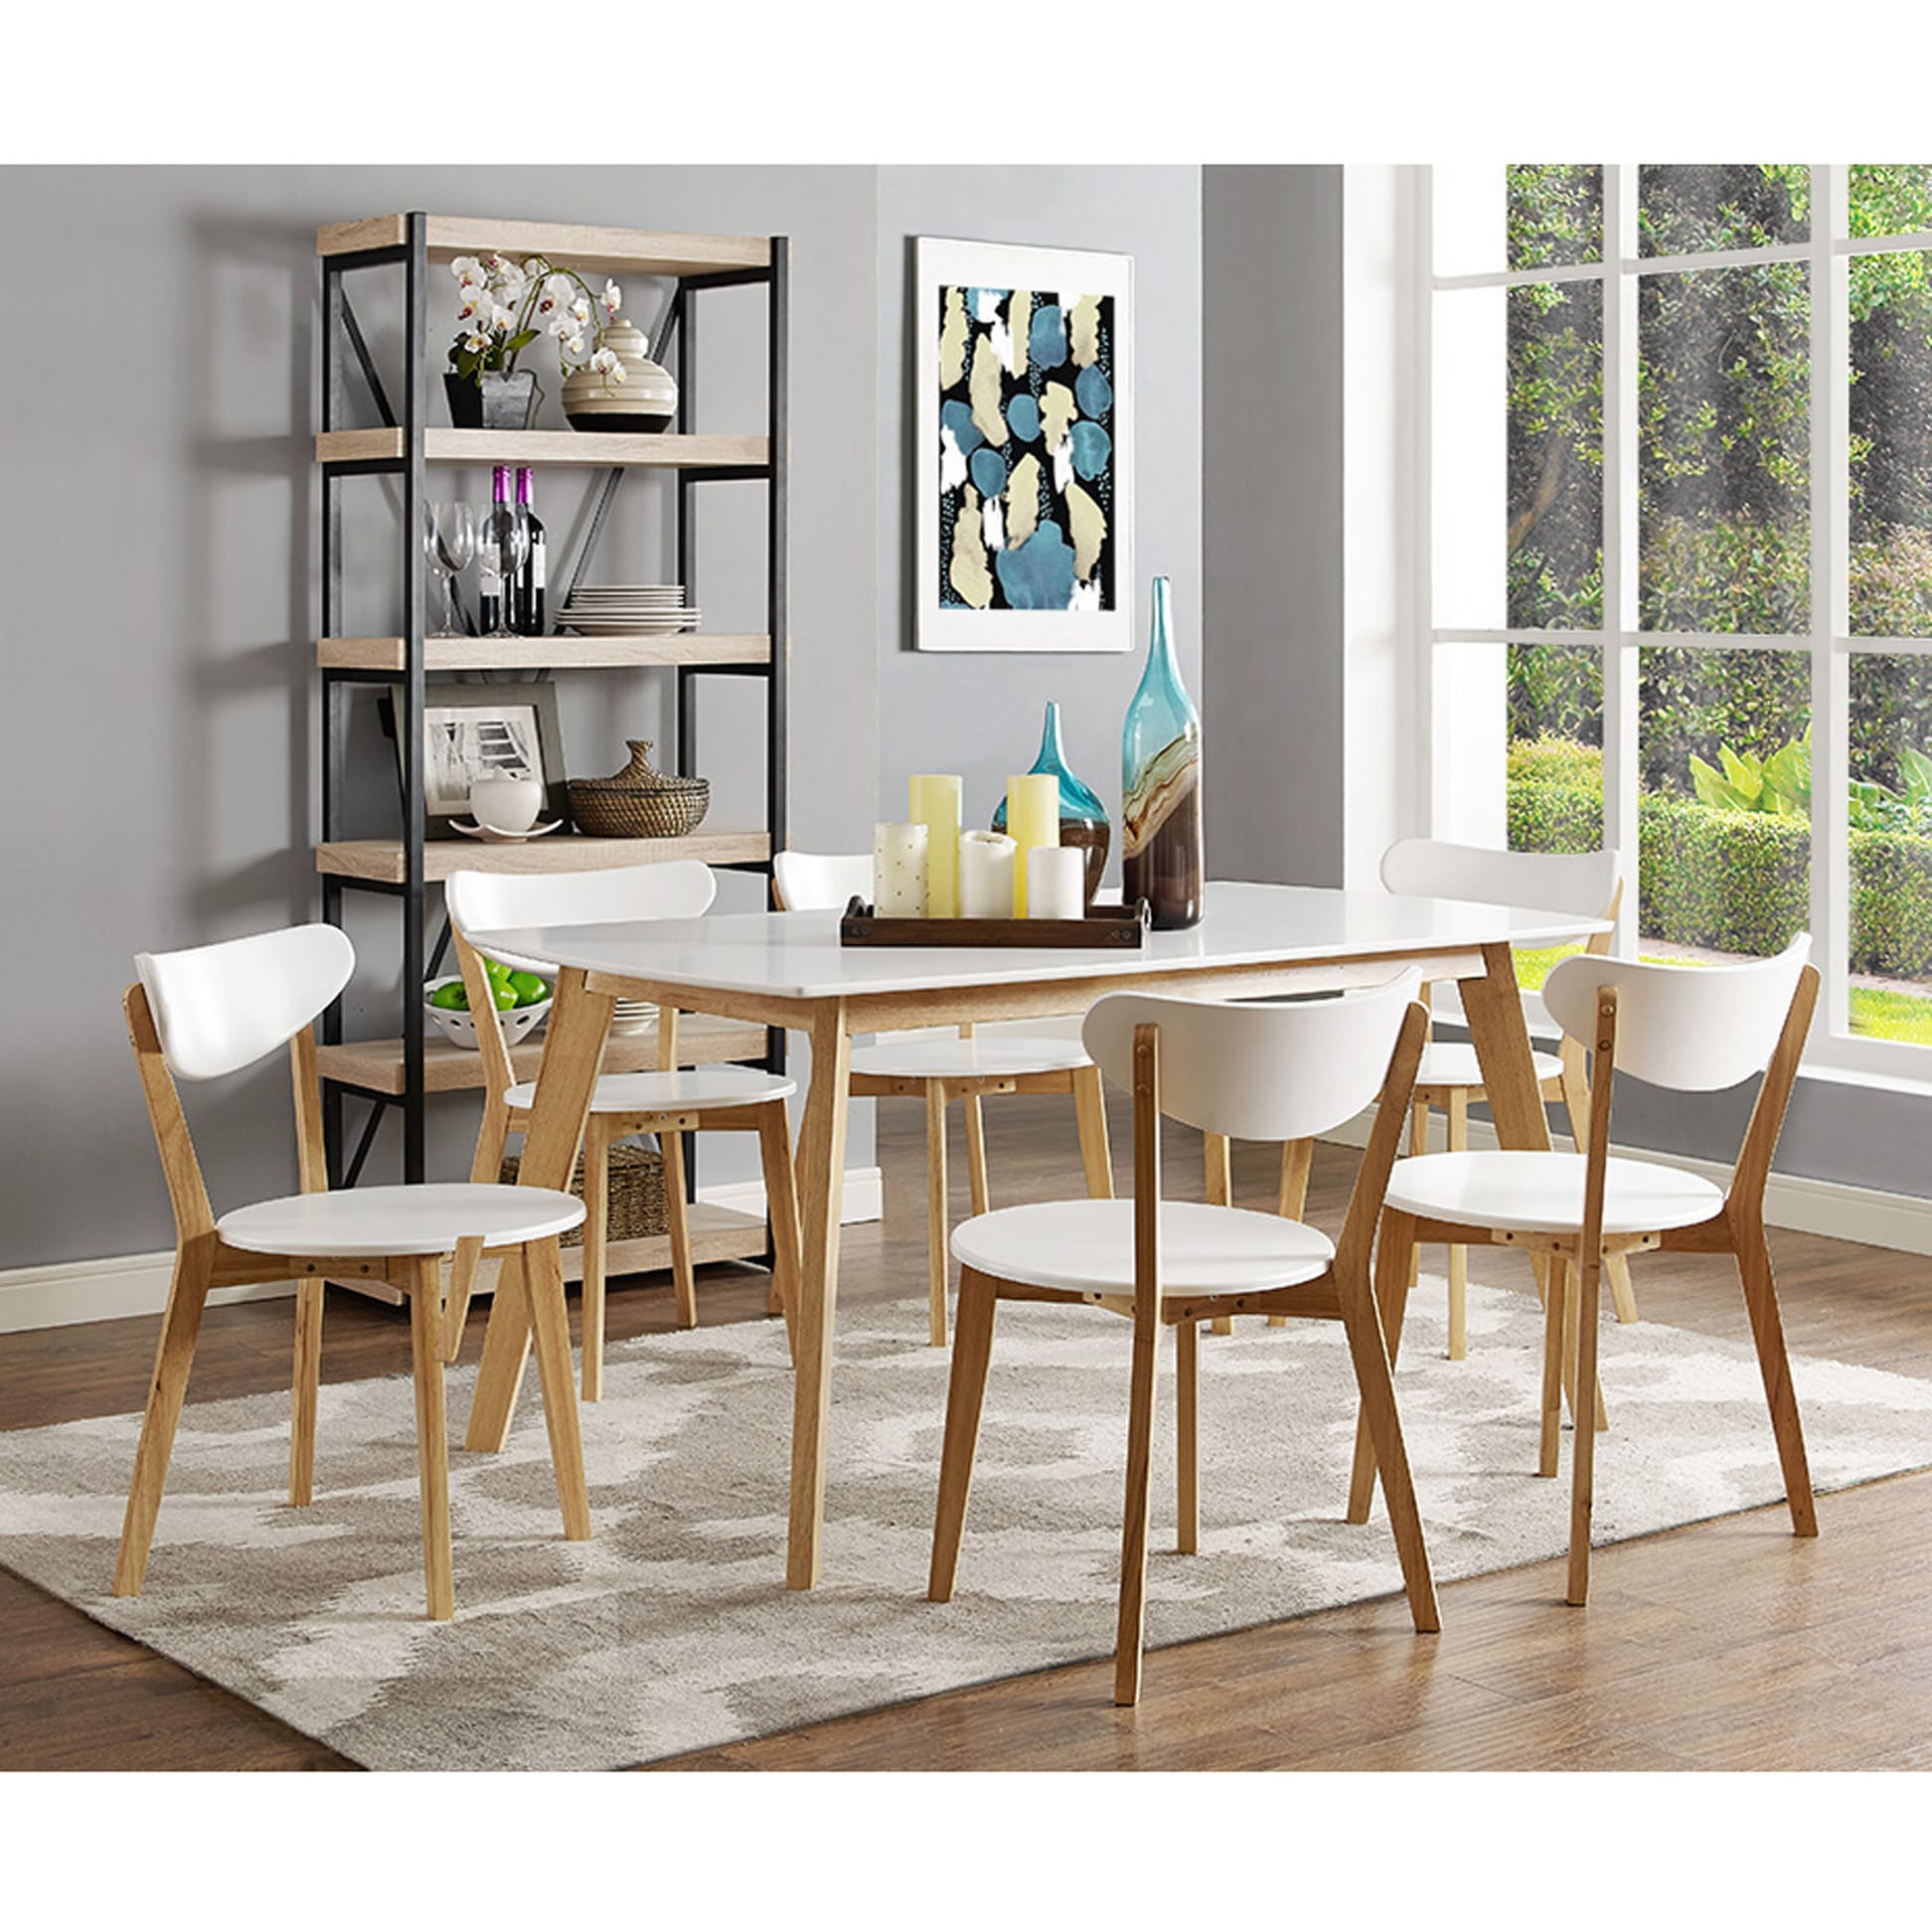 60 Inch Retro Modern Wood Dining Table by Walker Edison